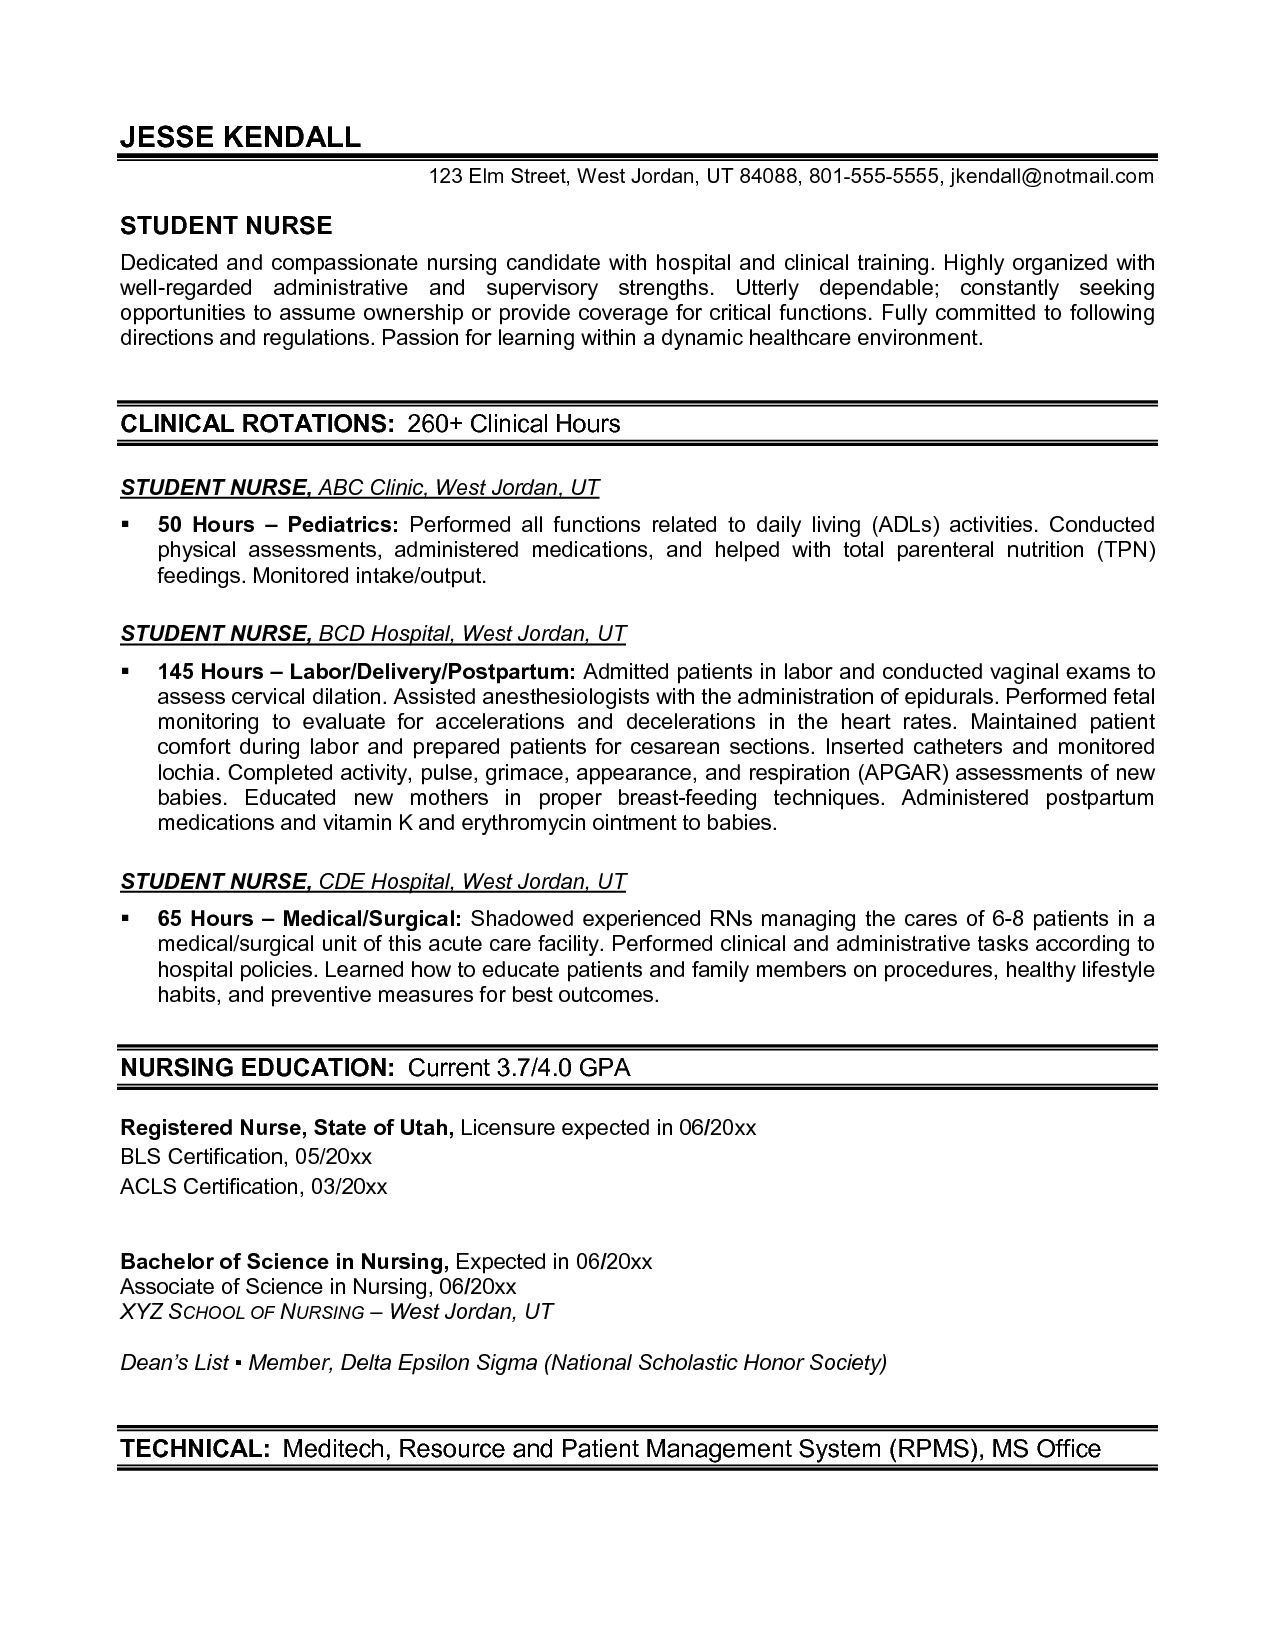 pin on nursing new grad rn resume objective templates for experienced candidates commis Resume New Grad Rn Resume Objective